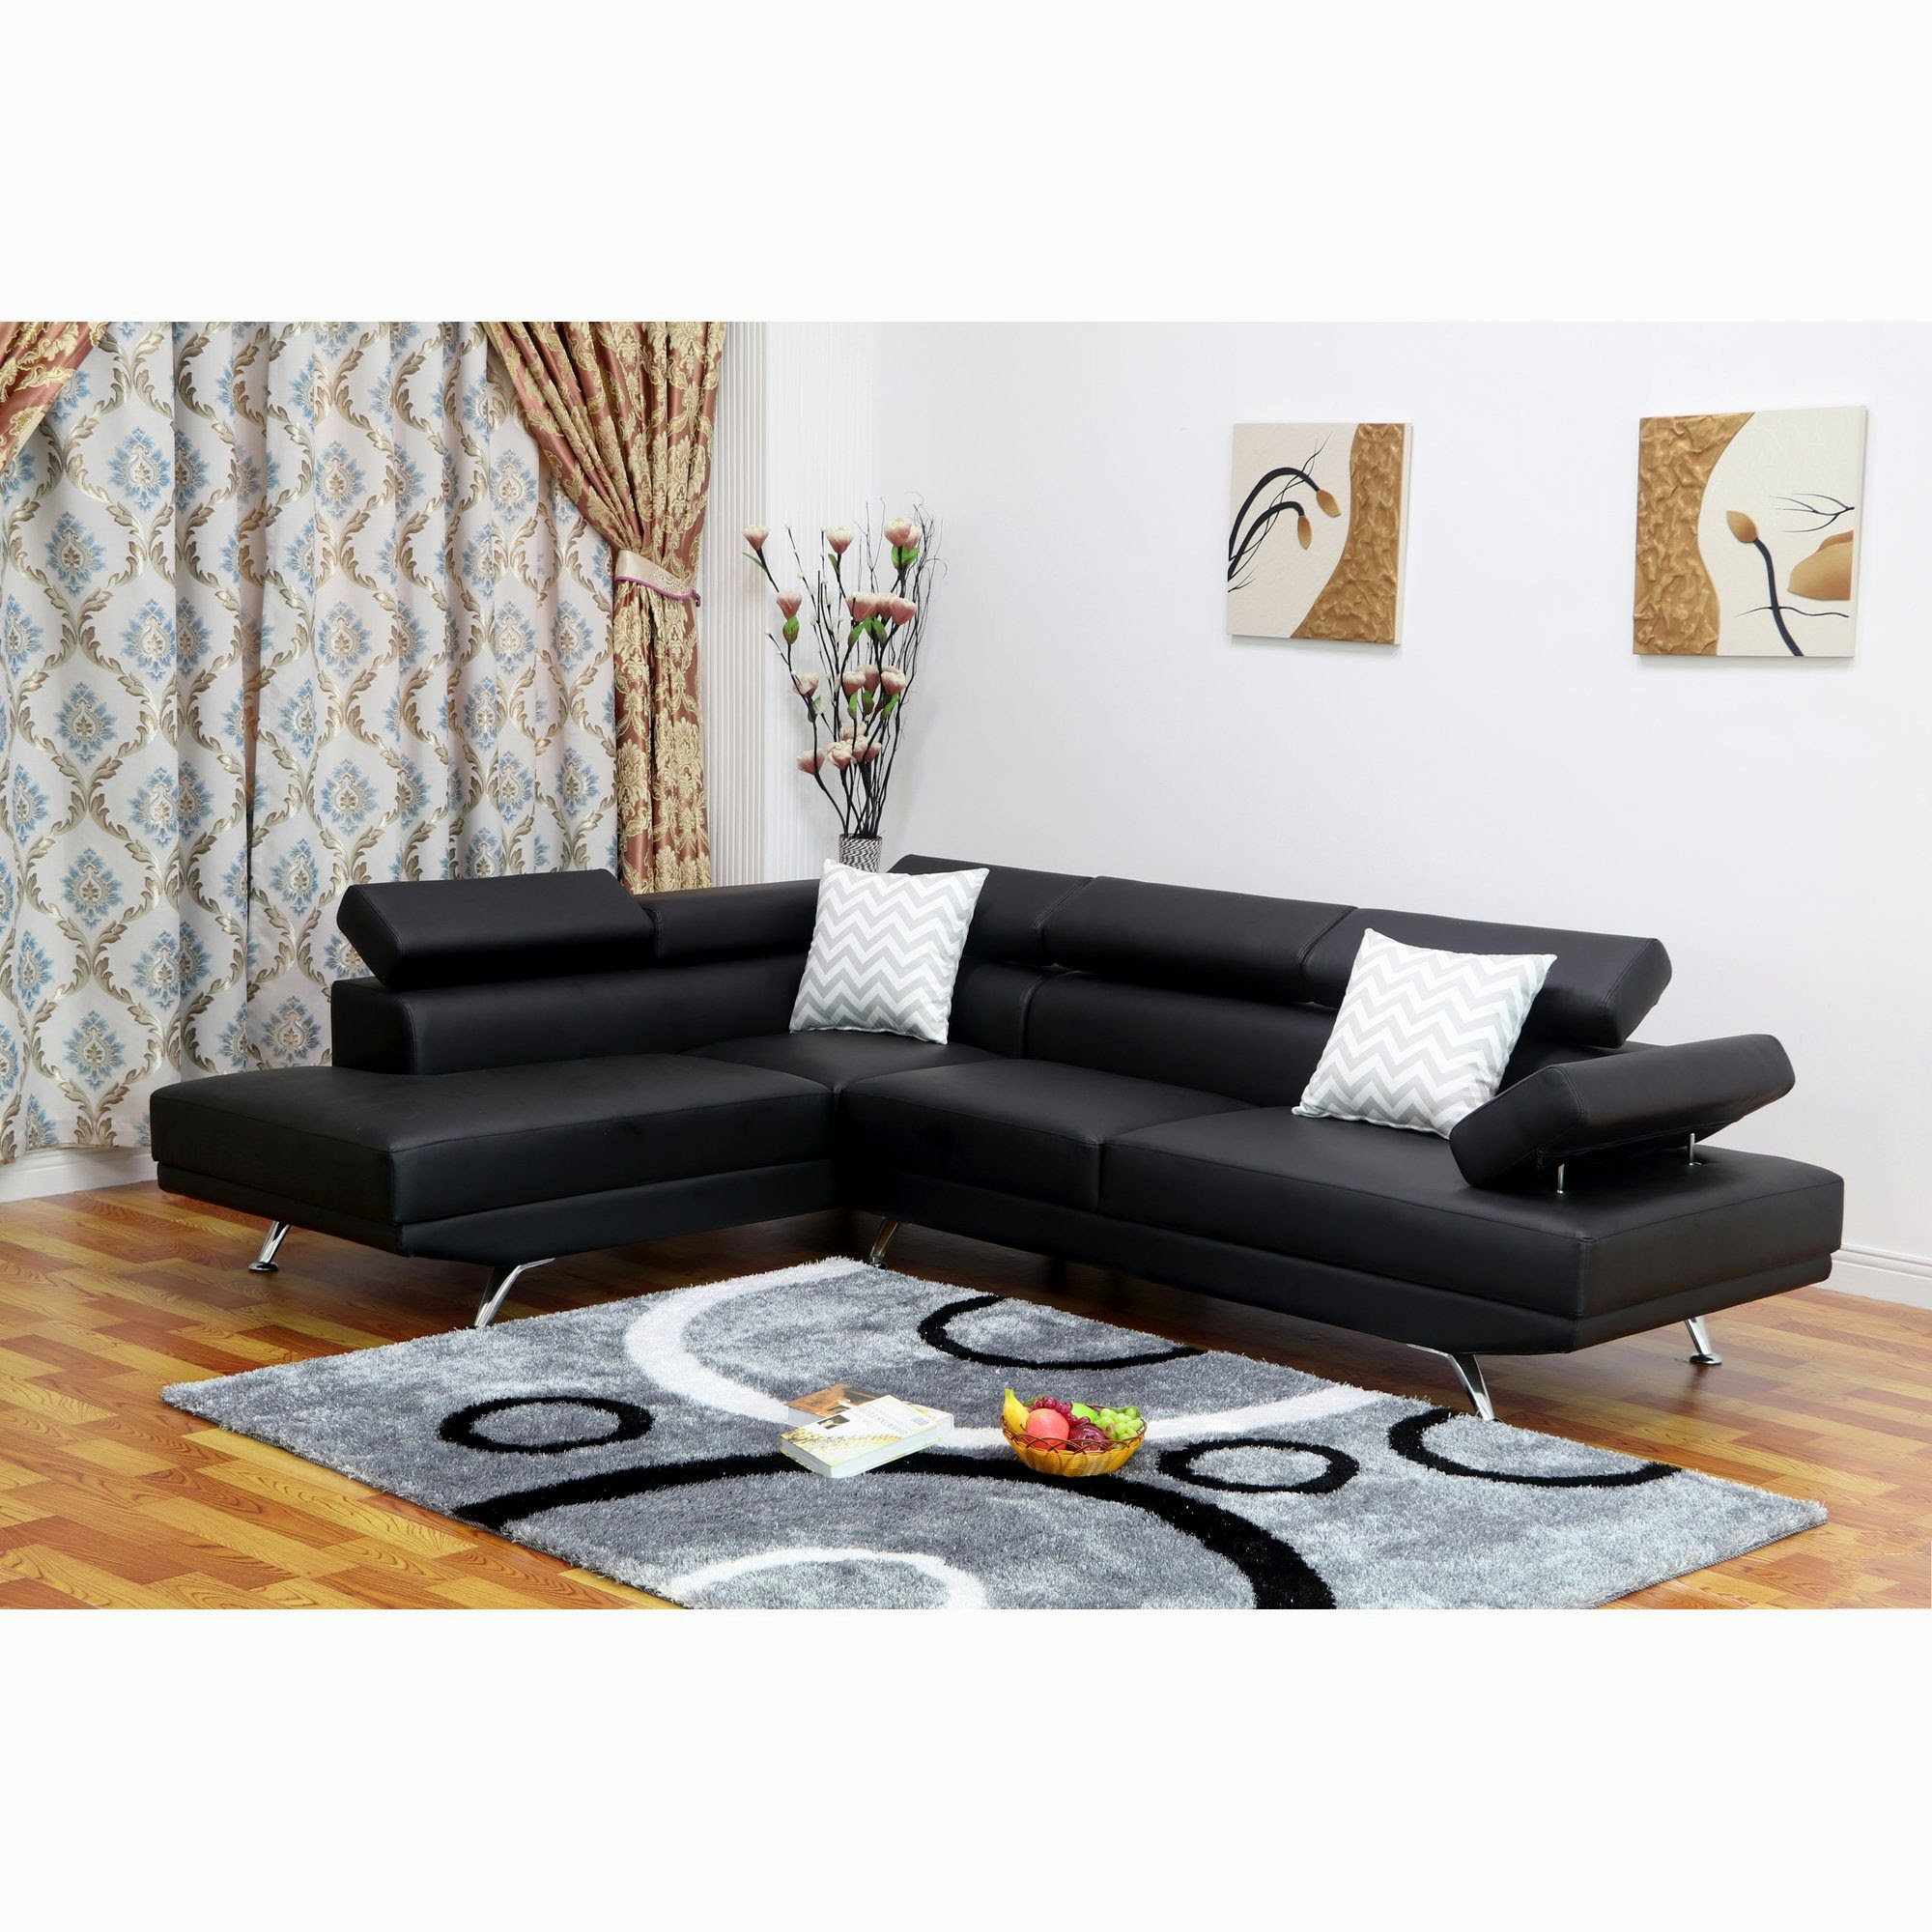 Incredible Ikea Stockholm sofa Review Concept - Modern ...